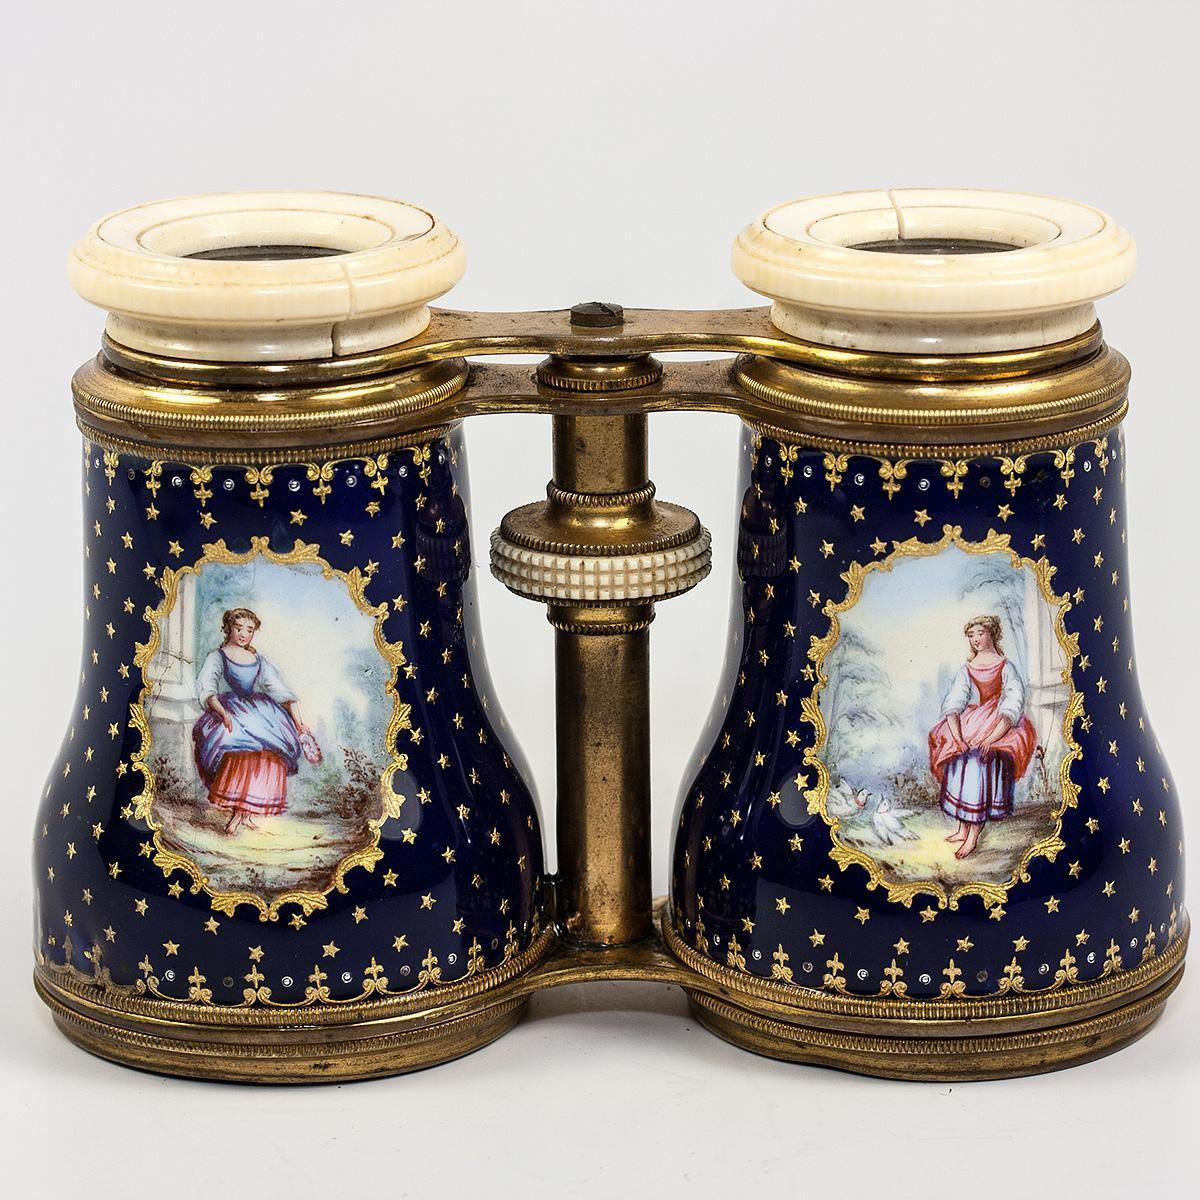 Large Antique French Kiln-fired Enamel Opera Glasses, Binoculars, Cobalt Blue with Figures Painted, c. 1860-1900